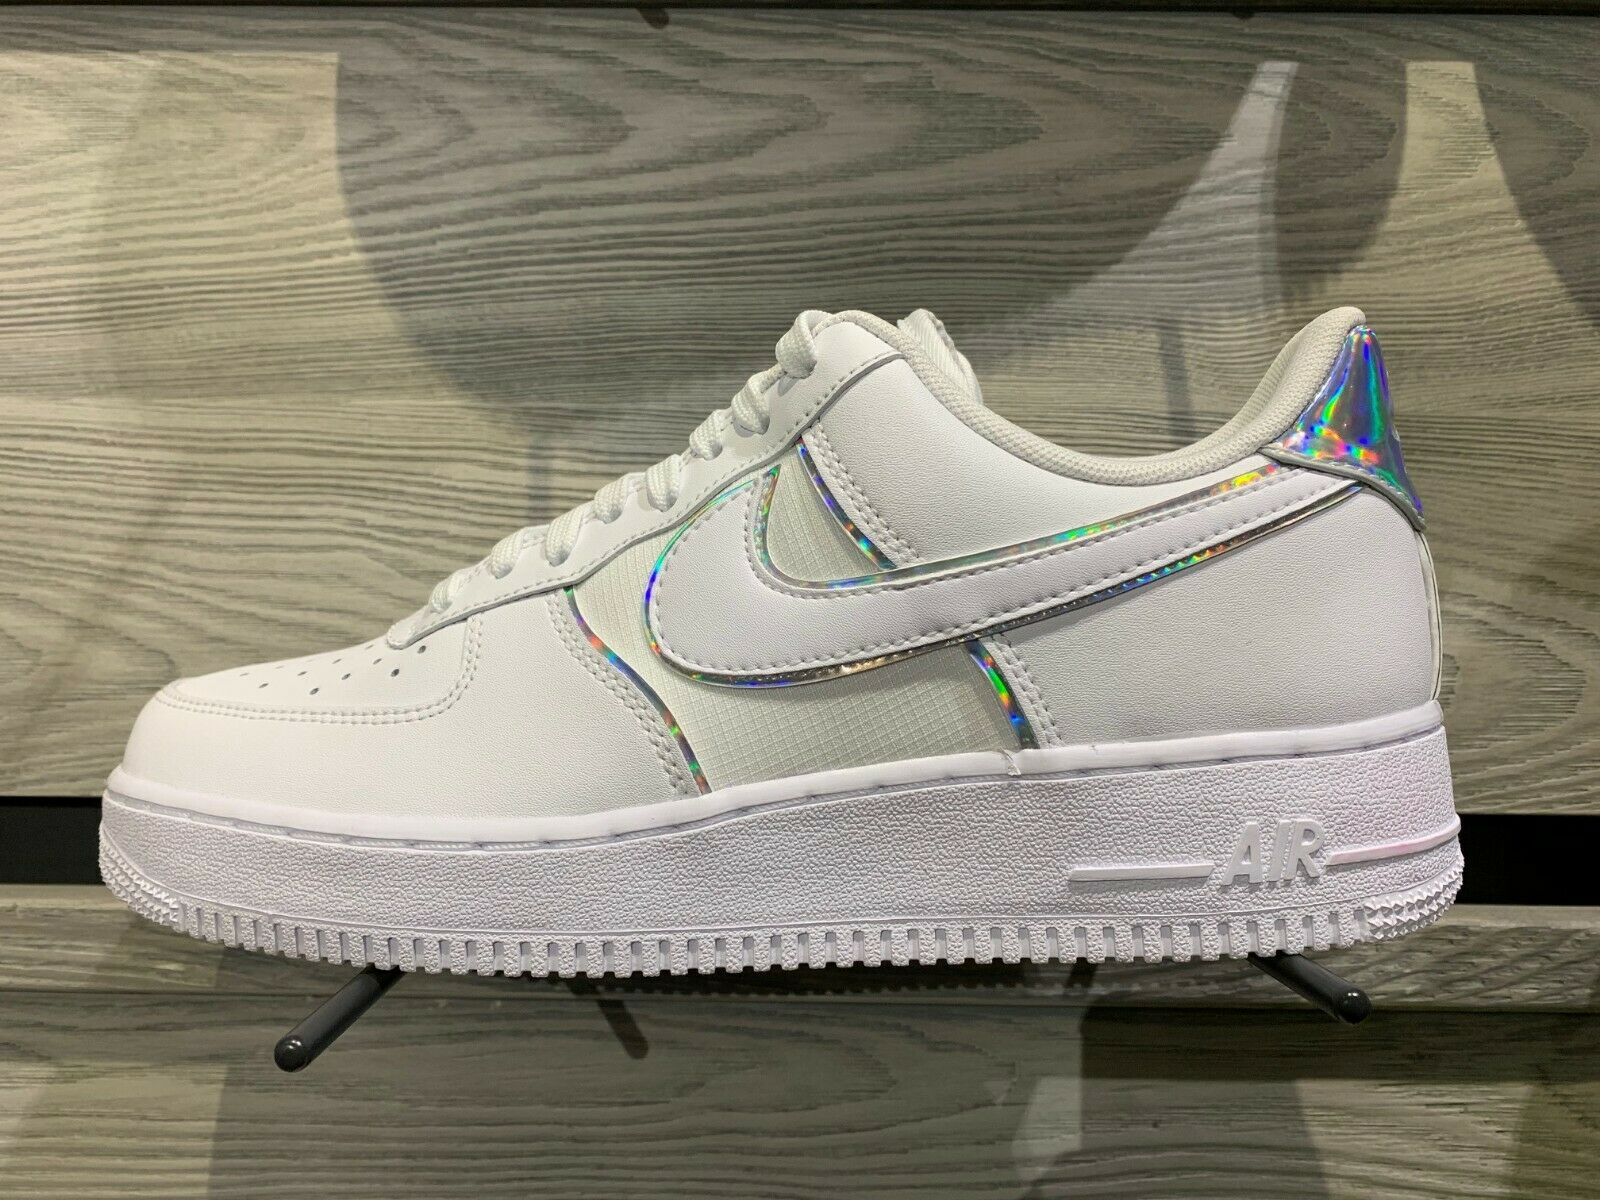 Air Force 1 Low Y2k White Iridescent Size 8-13 DS NEW